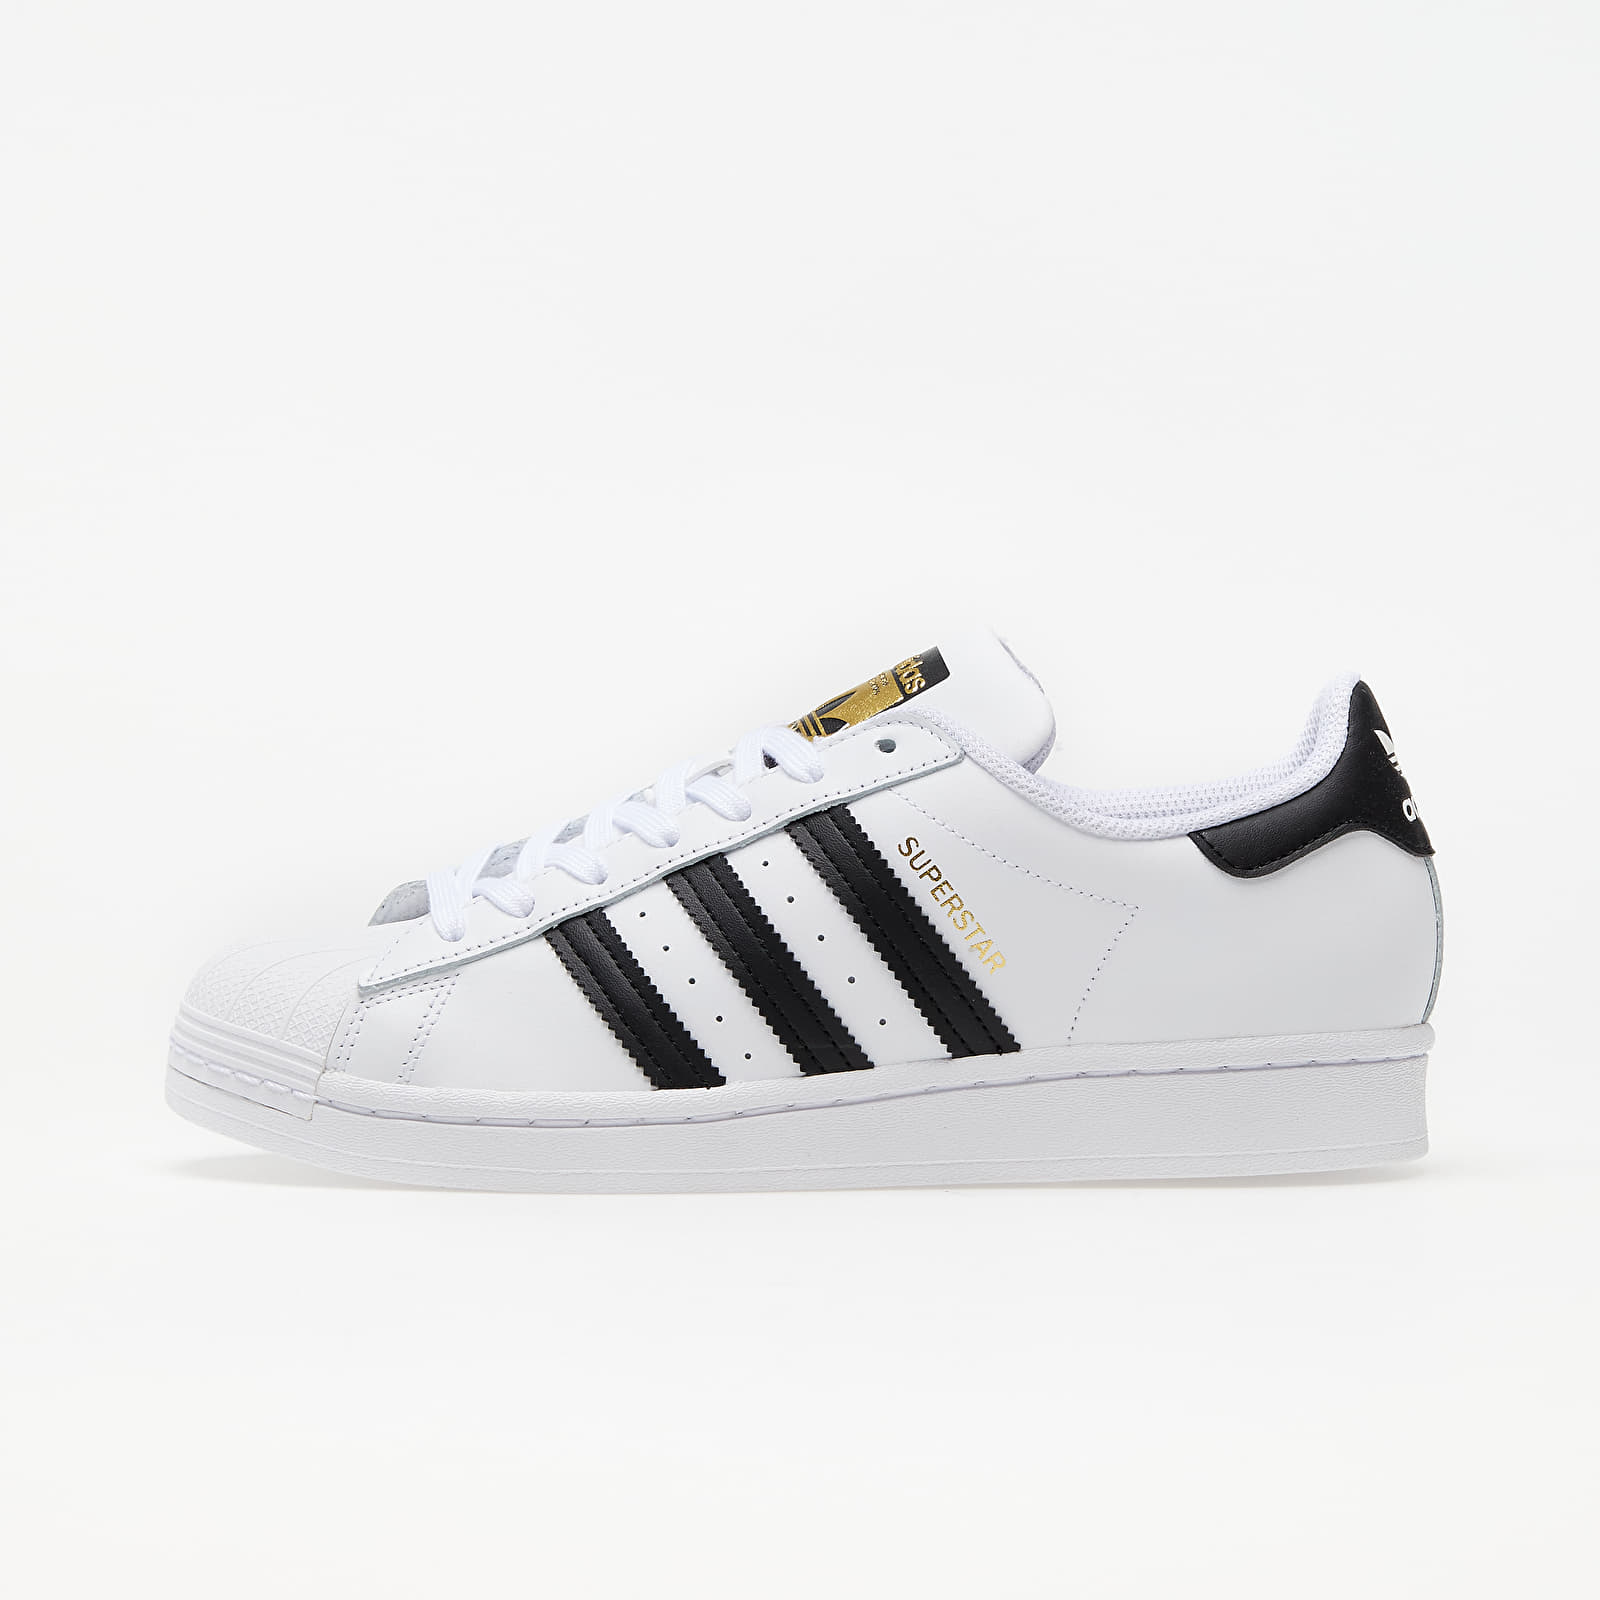 adidas Superstar Ftw White/ Core Black/ Ftw White EUR 44